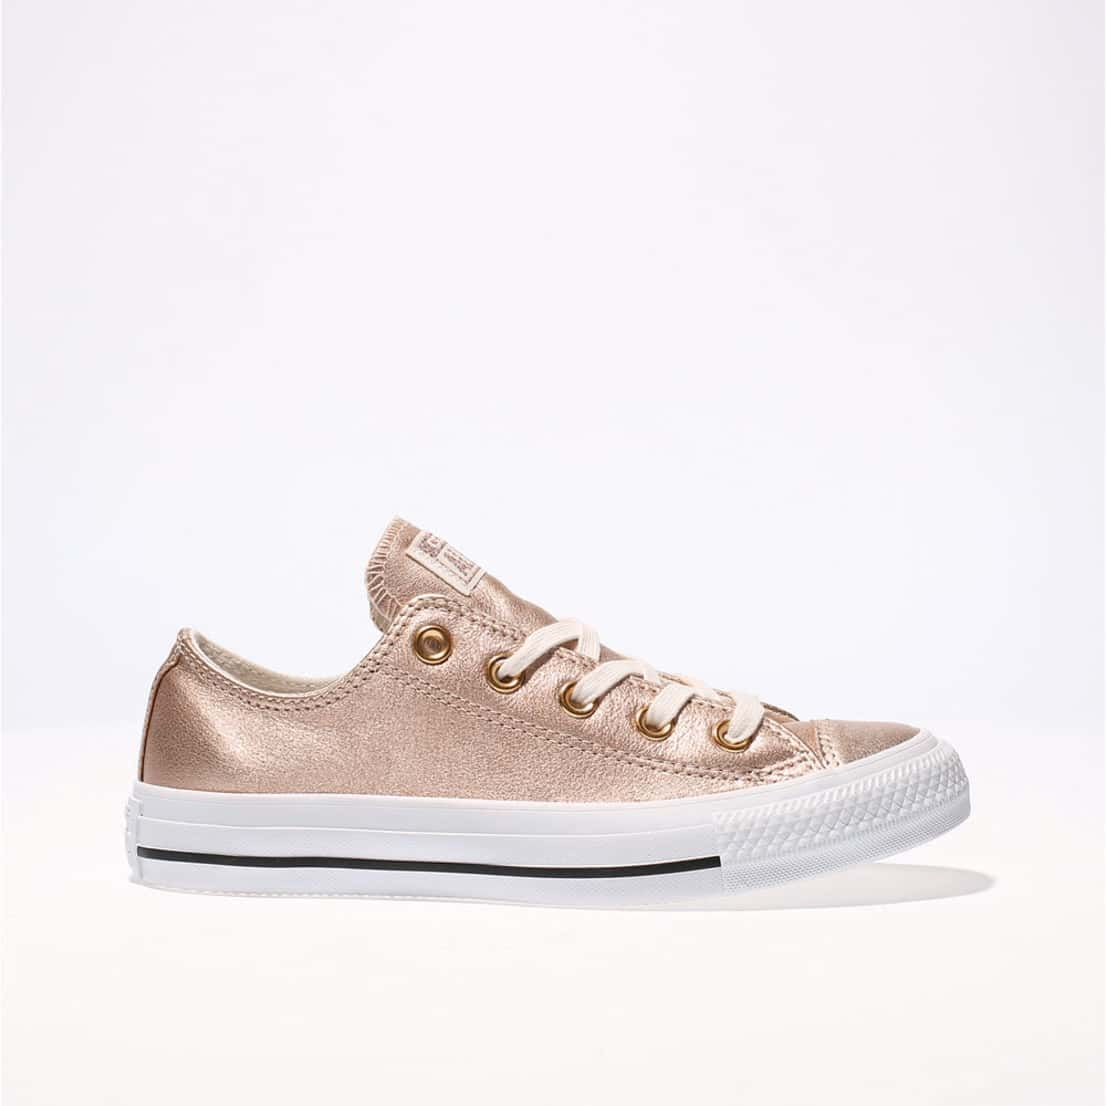 3e65ee4cc729 womens rose gold converse all star metallic leather ox trainers ...